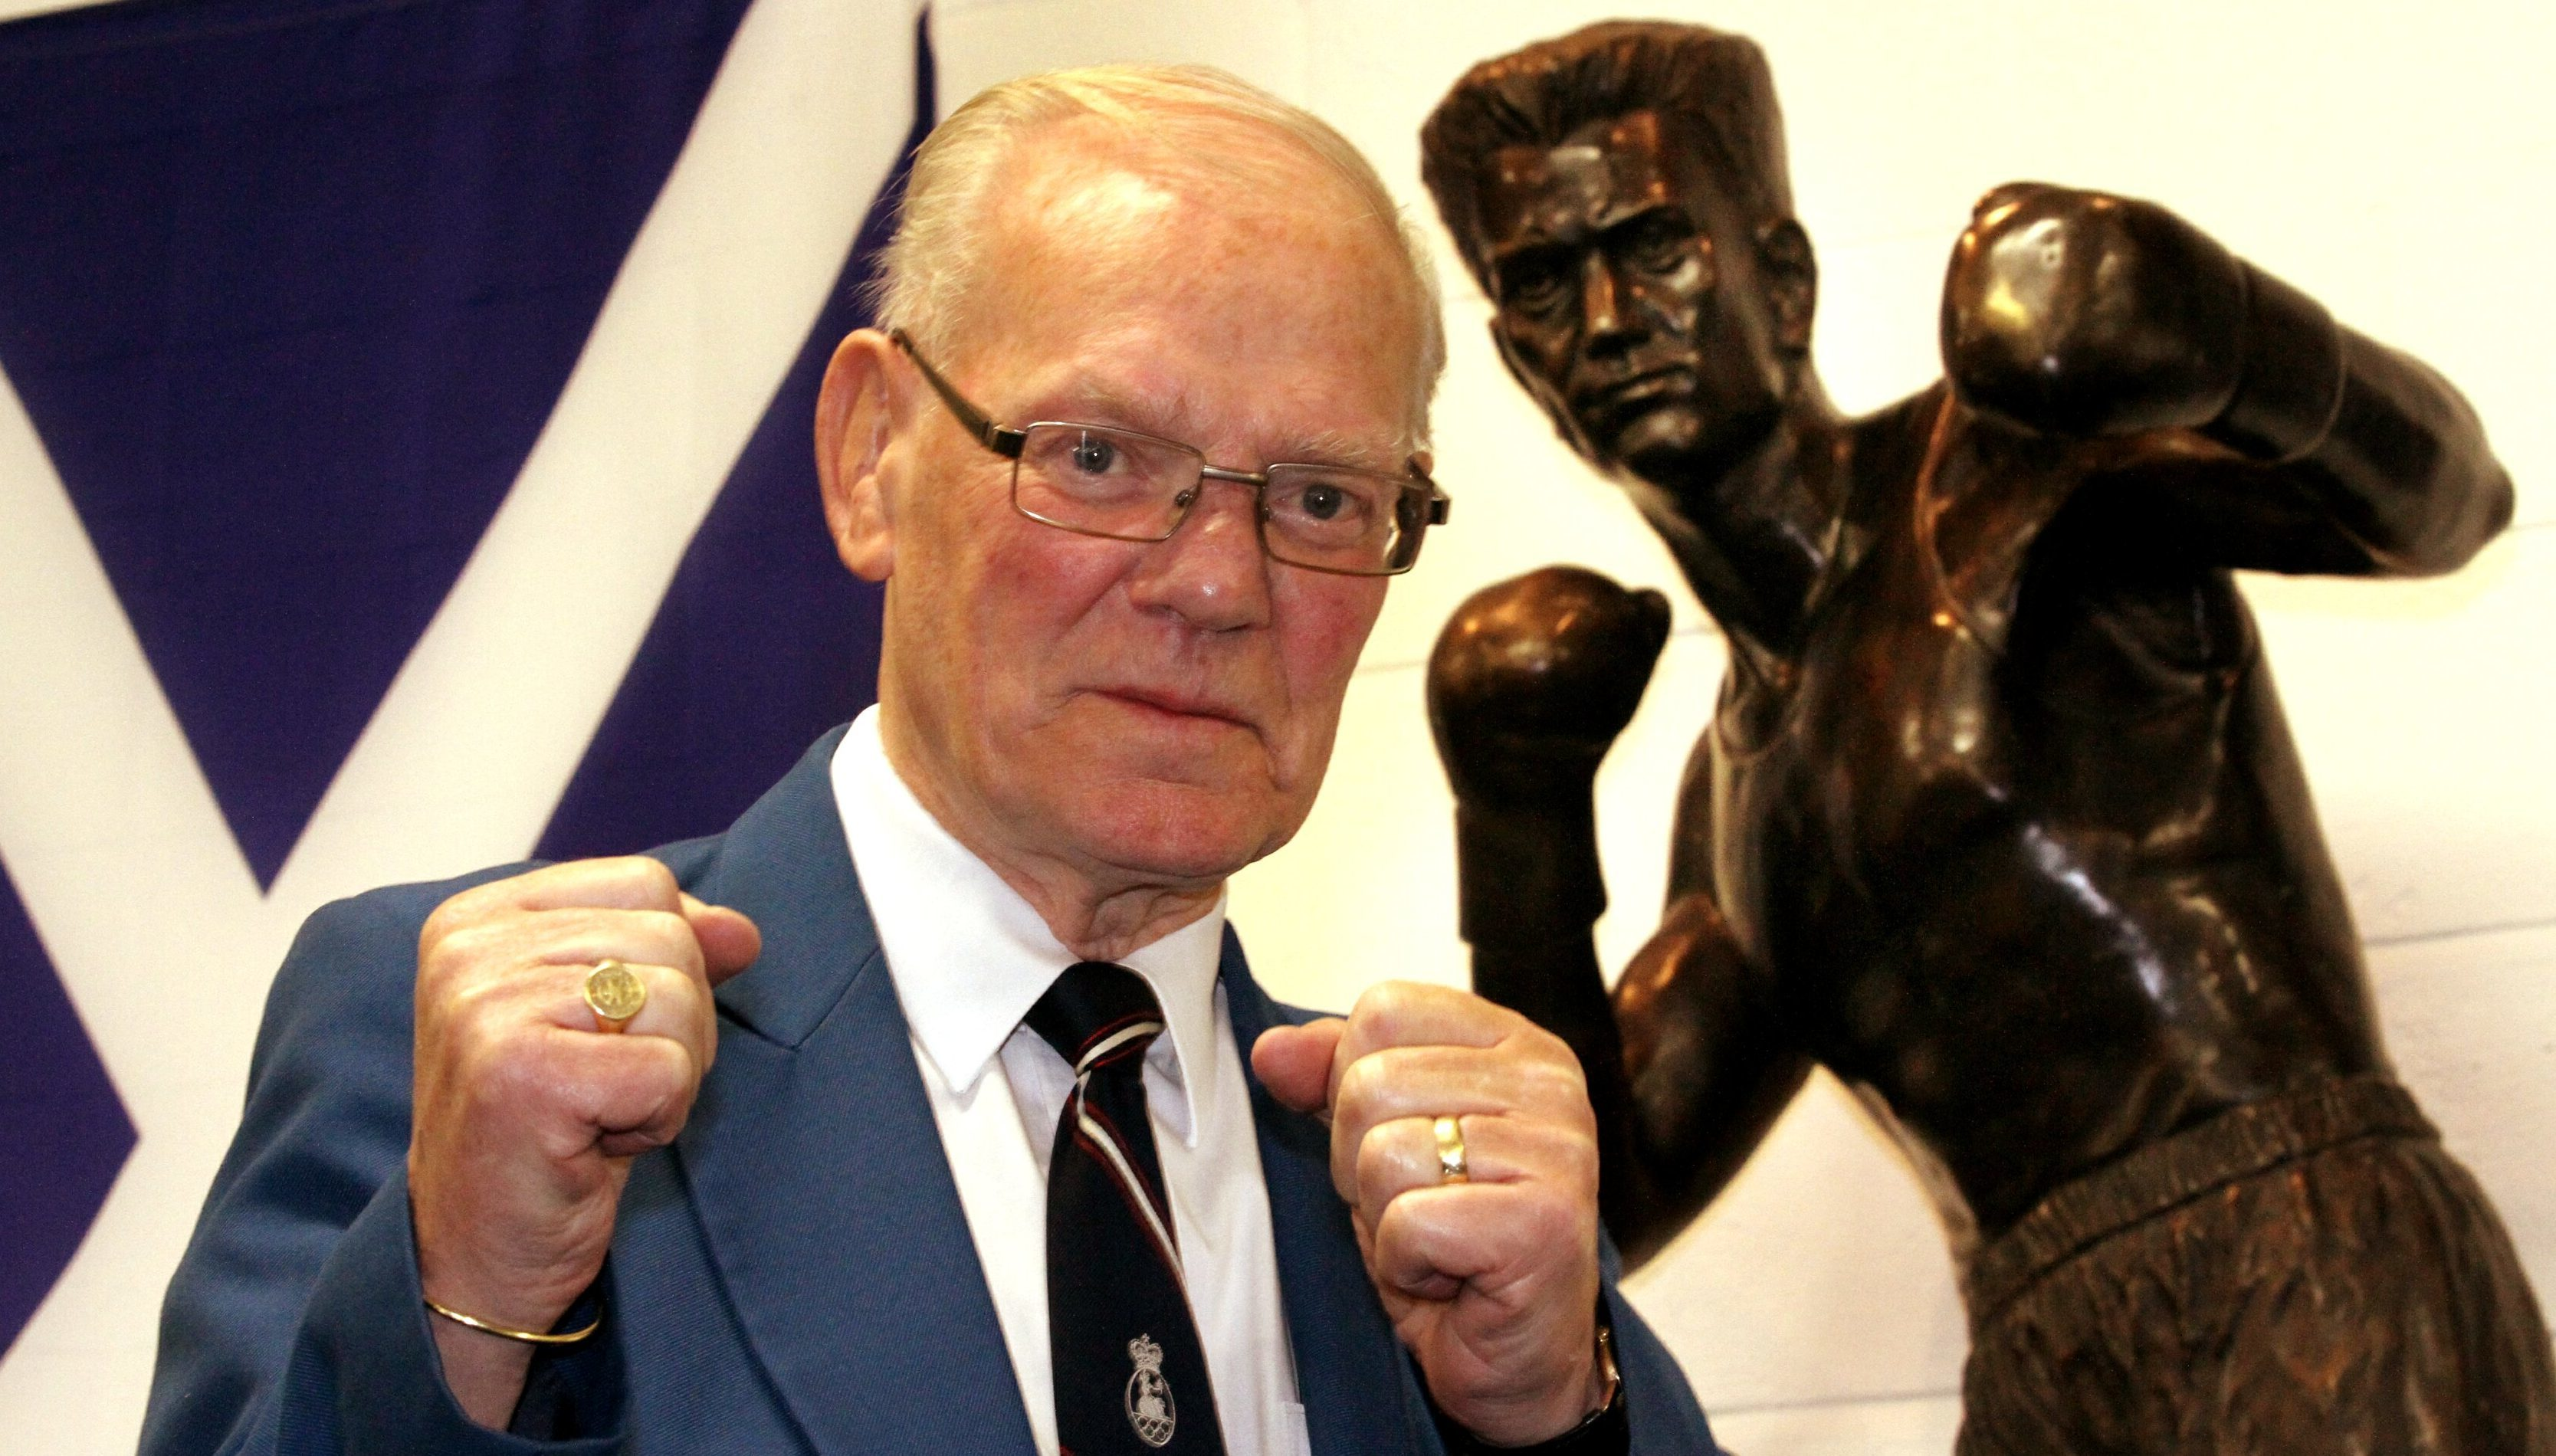 A statue of Dundee boxing legend Dick McTaggart  was unveiled last year at St Francis ABC Sporting Club in Dundee